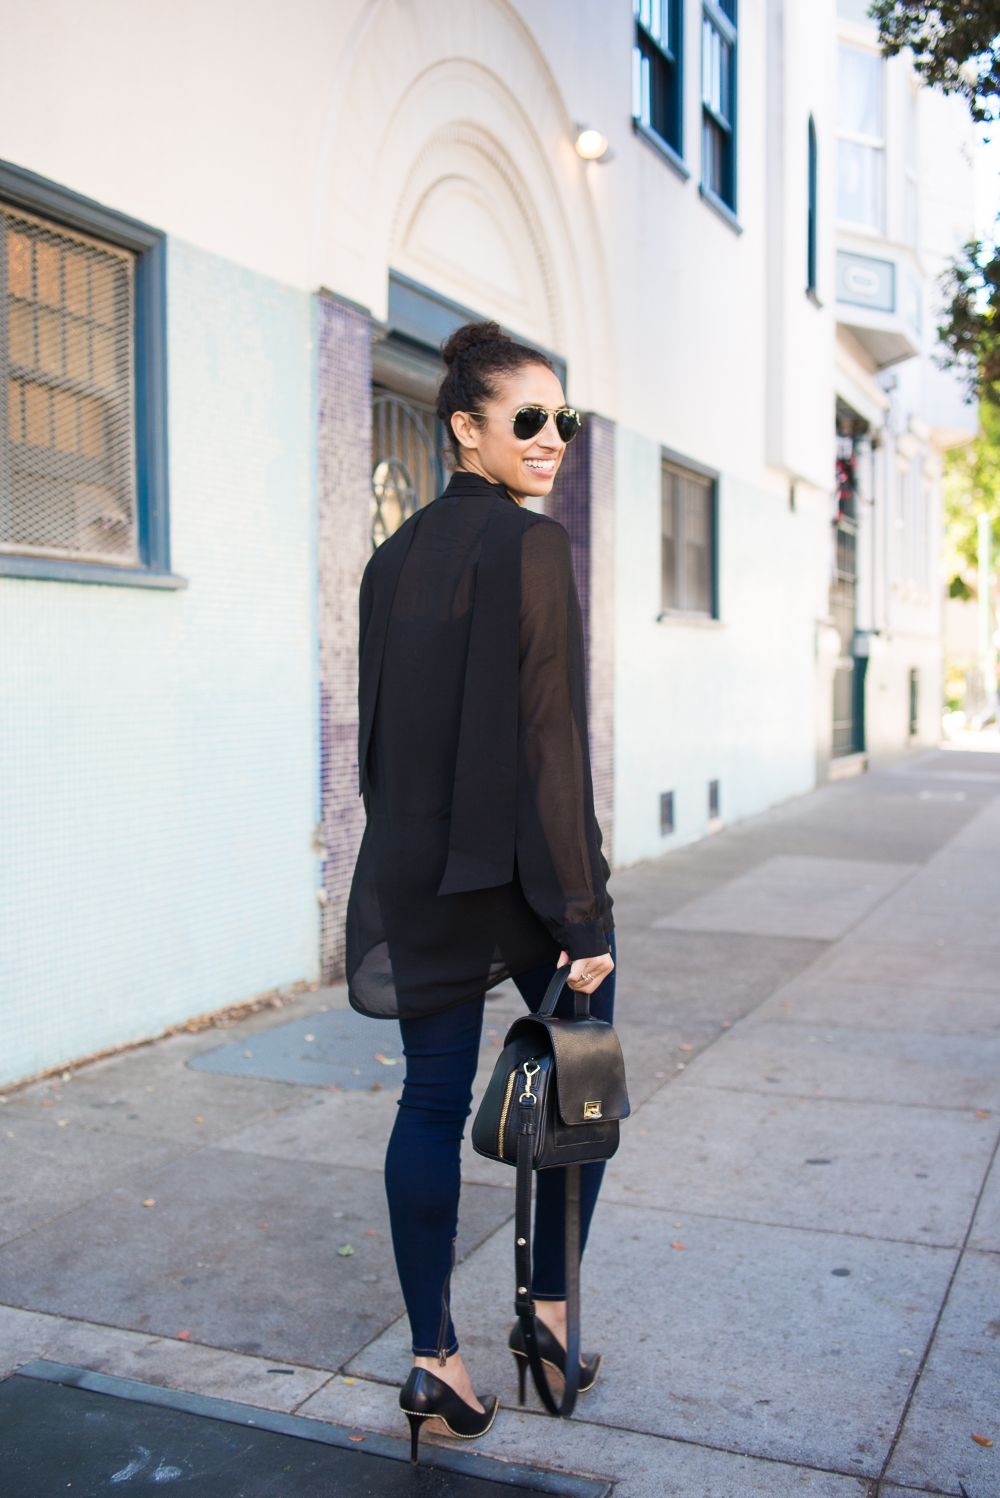 melissademata.com | Allergic to Vanilla, San Francisco Style Blogger